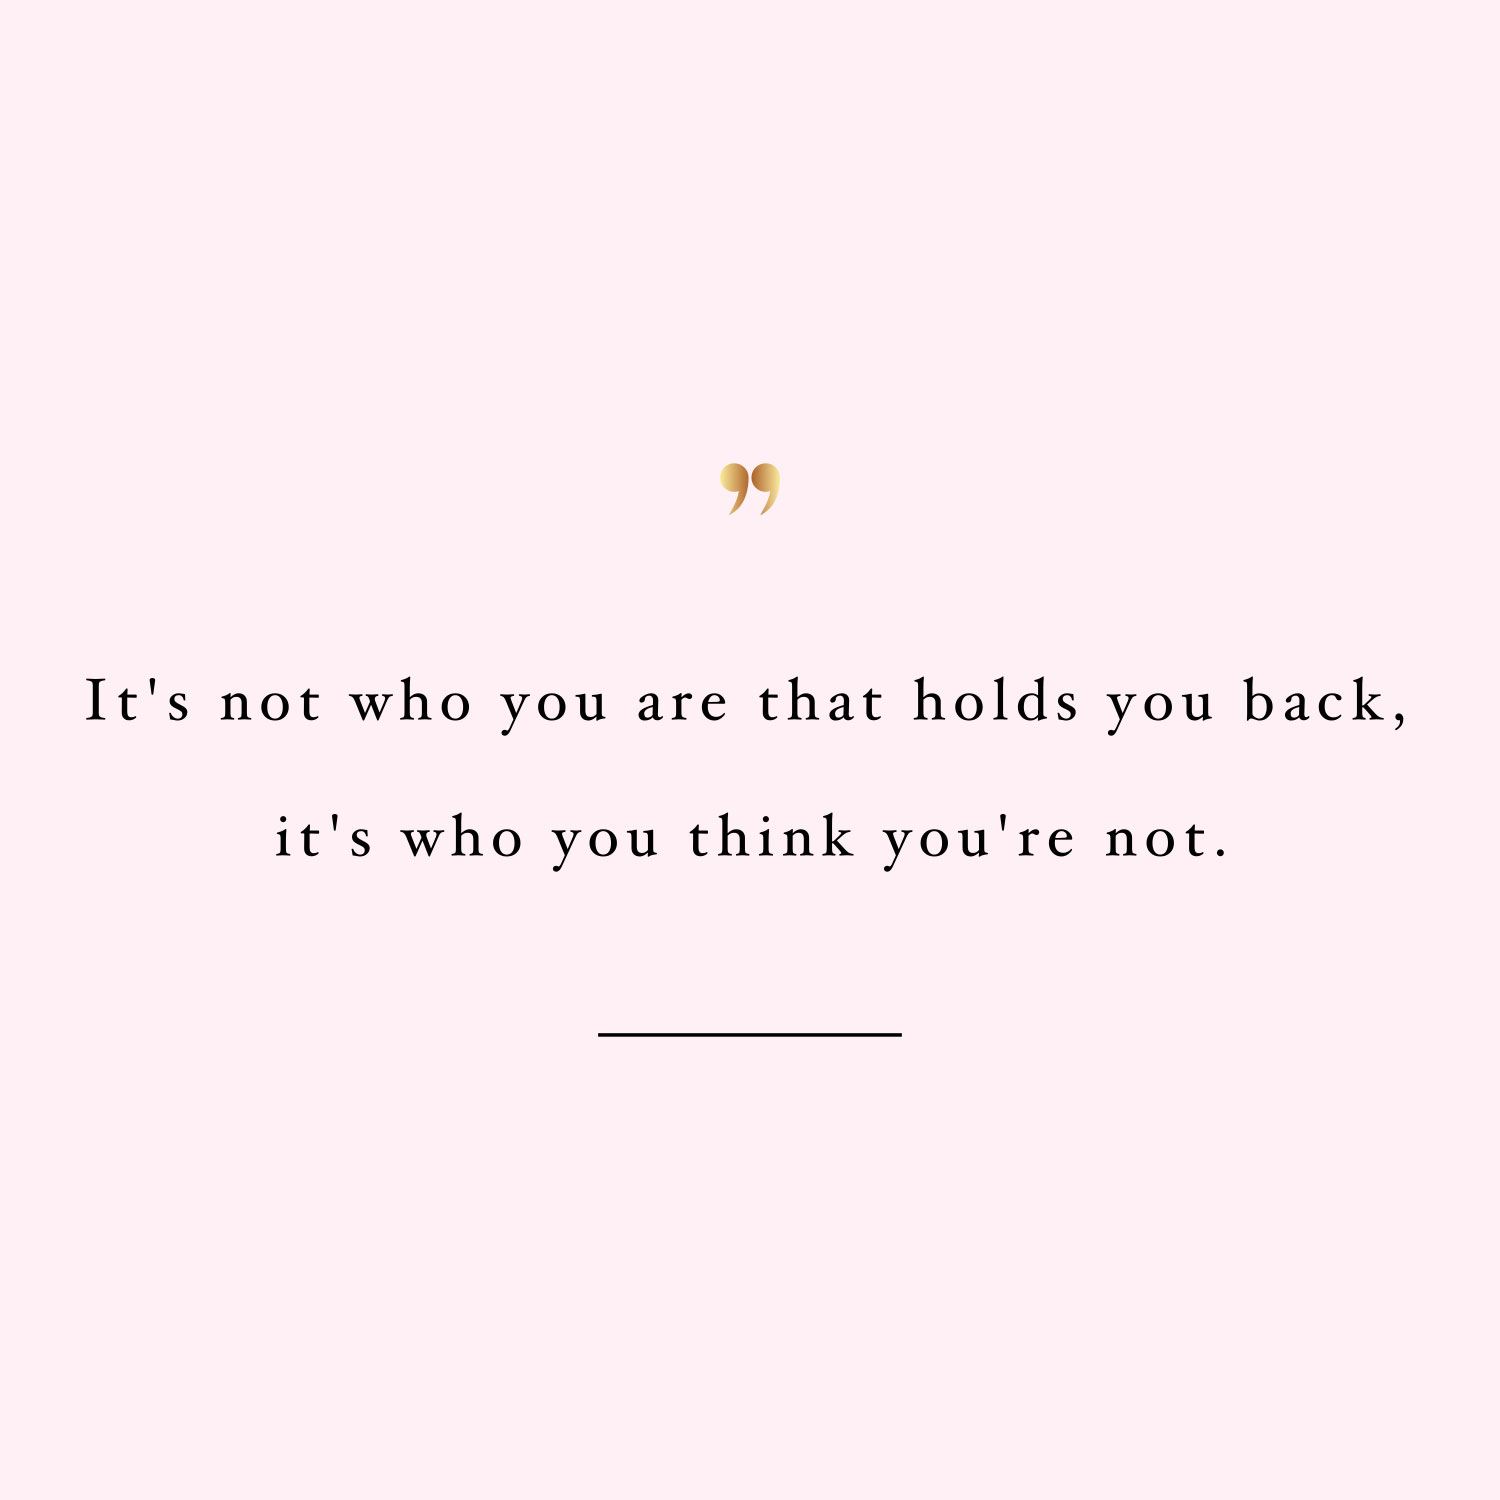 Don't hold yourself back! Browse our collection of inspirational healthy lifestyle quotes and get instant weight loss and training motivation. Stay focused and get fit, healthy and happy! https://www.spotebi.com/workout-motivation/dont-hold-yourself-back/